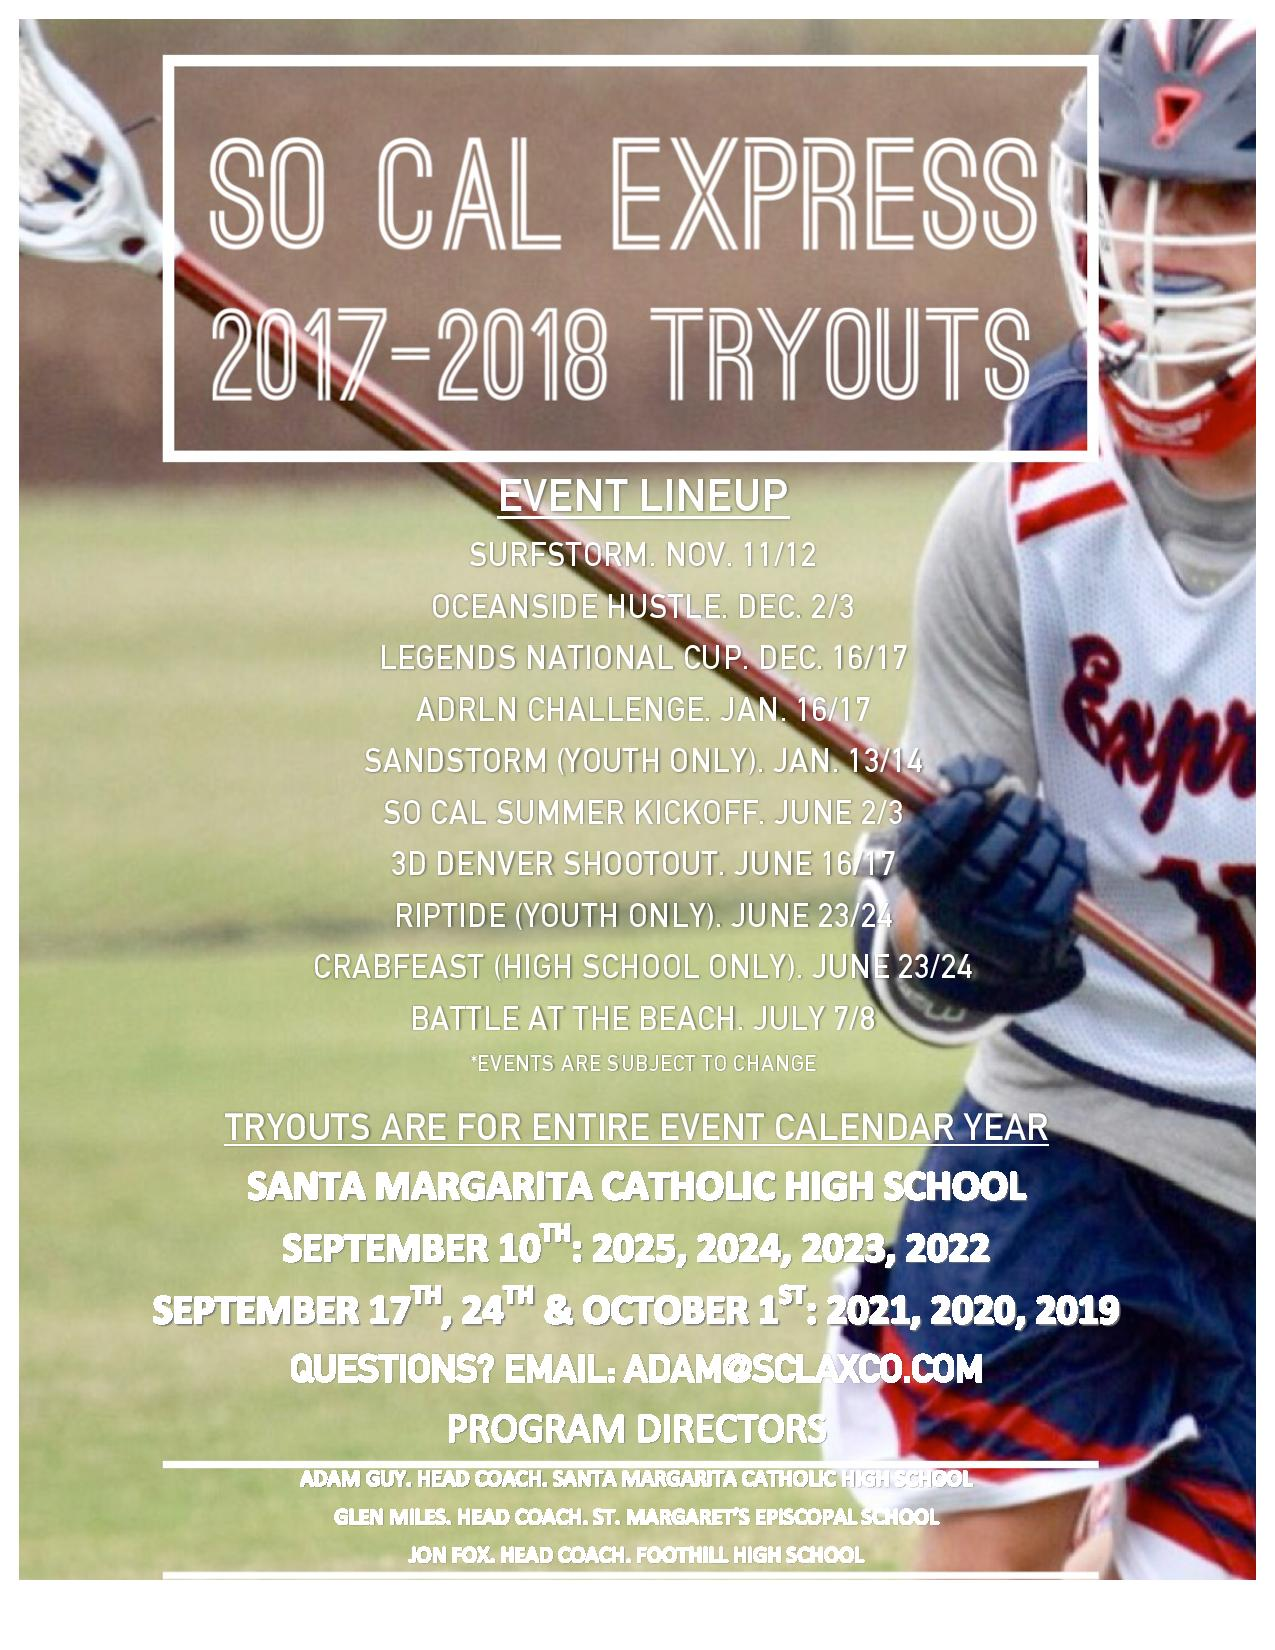 So Cal Express Tryouts